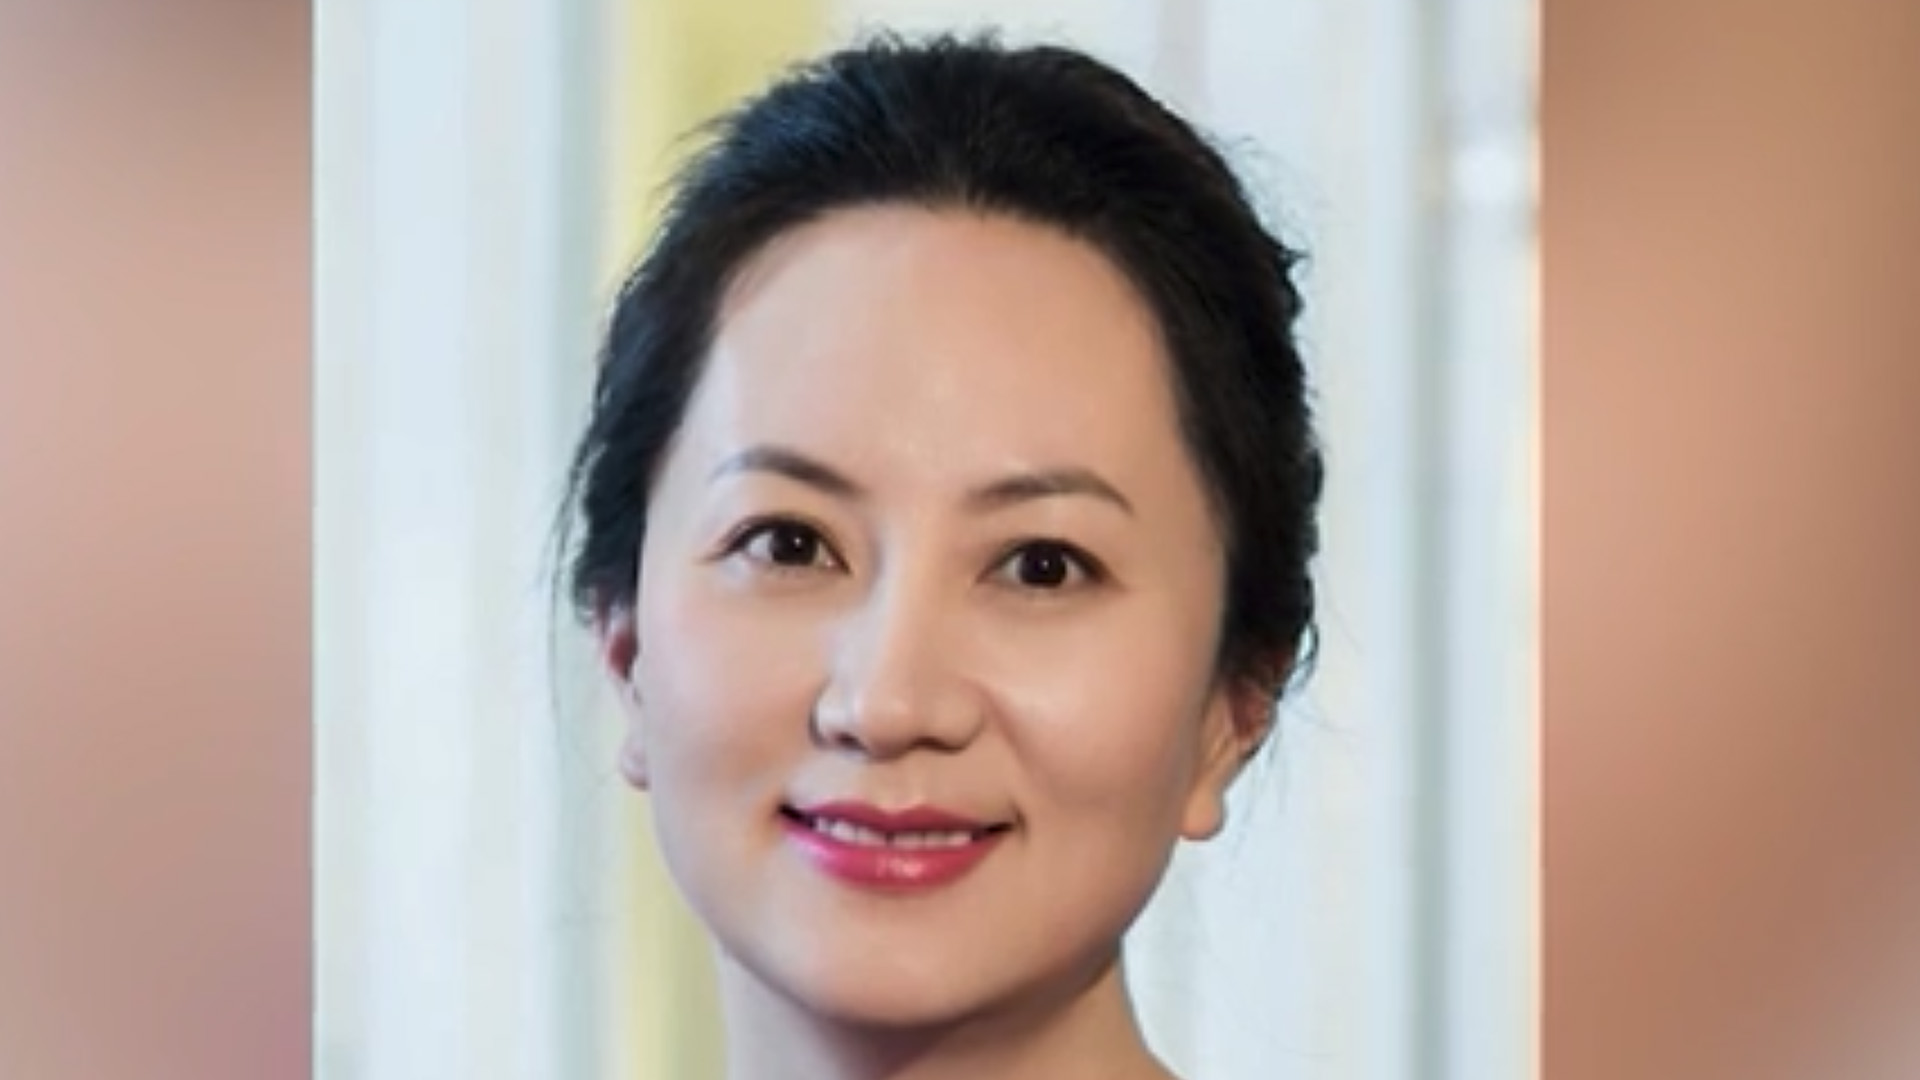 Meng Wanzhou, Chief Financial Officer for Chinese tech company Huawei, is seen in this photo from Huawei obtained by CNN. (Credit: CNN)